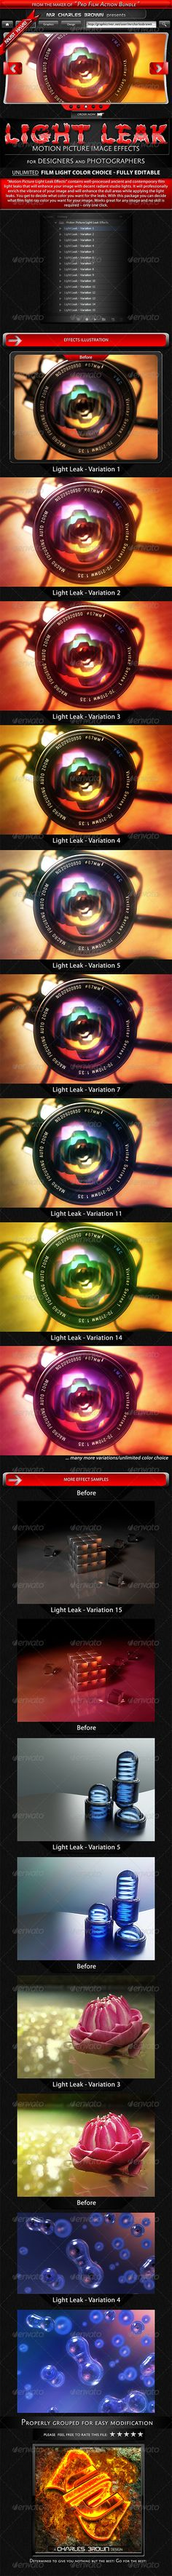 ◞ [Nulled]▵ Motion Picture Light Leak Effects Camera Digital Retouching Film Light Leak Glow Graphicriver Image Effect Hdr Image Effects Cool Photoshop, Photoshop Actions, Photography Tools, Photoshop Photography, River I, Pinhole Camera, Light Leak, Light Rays